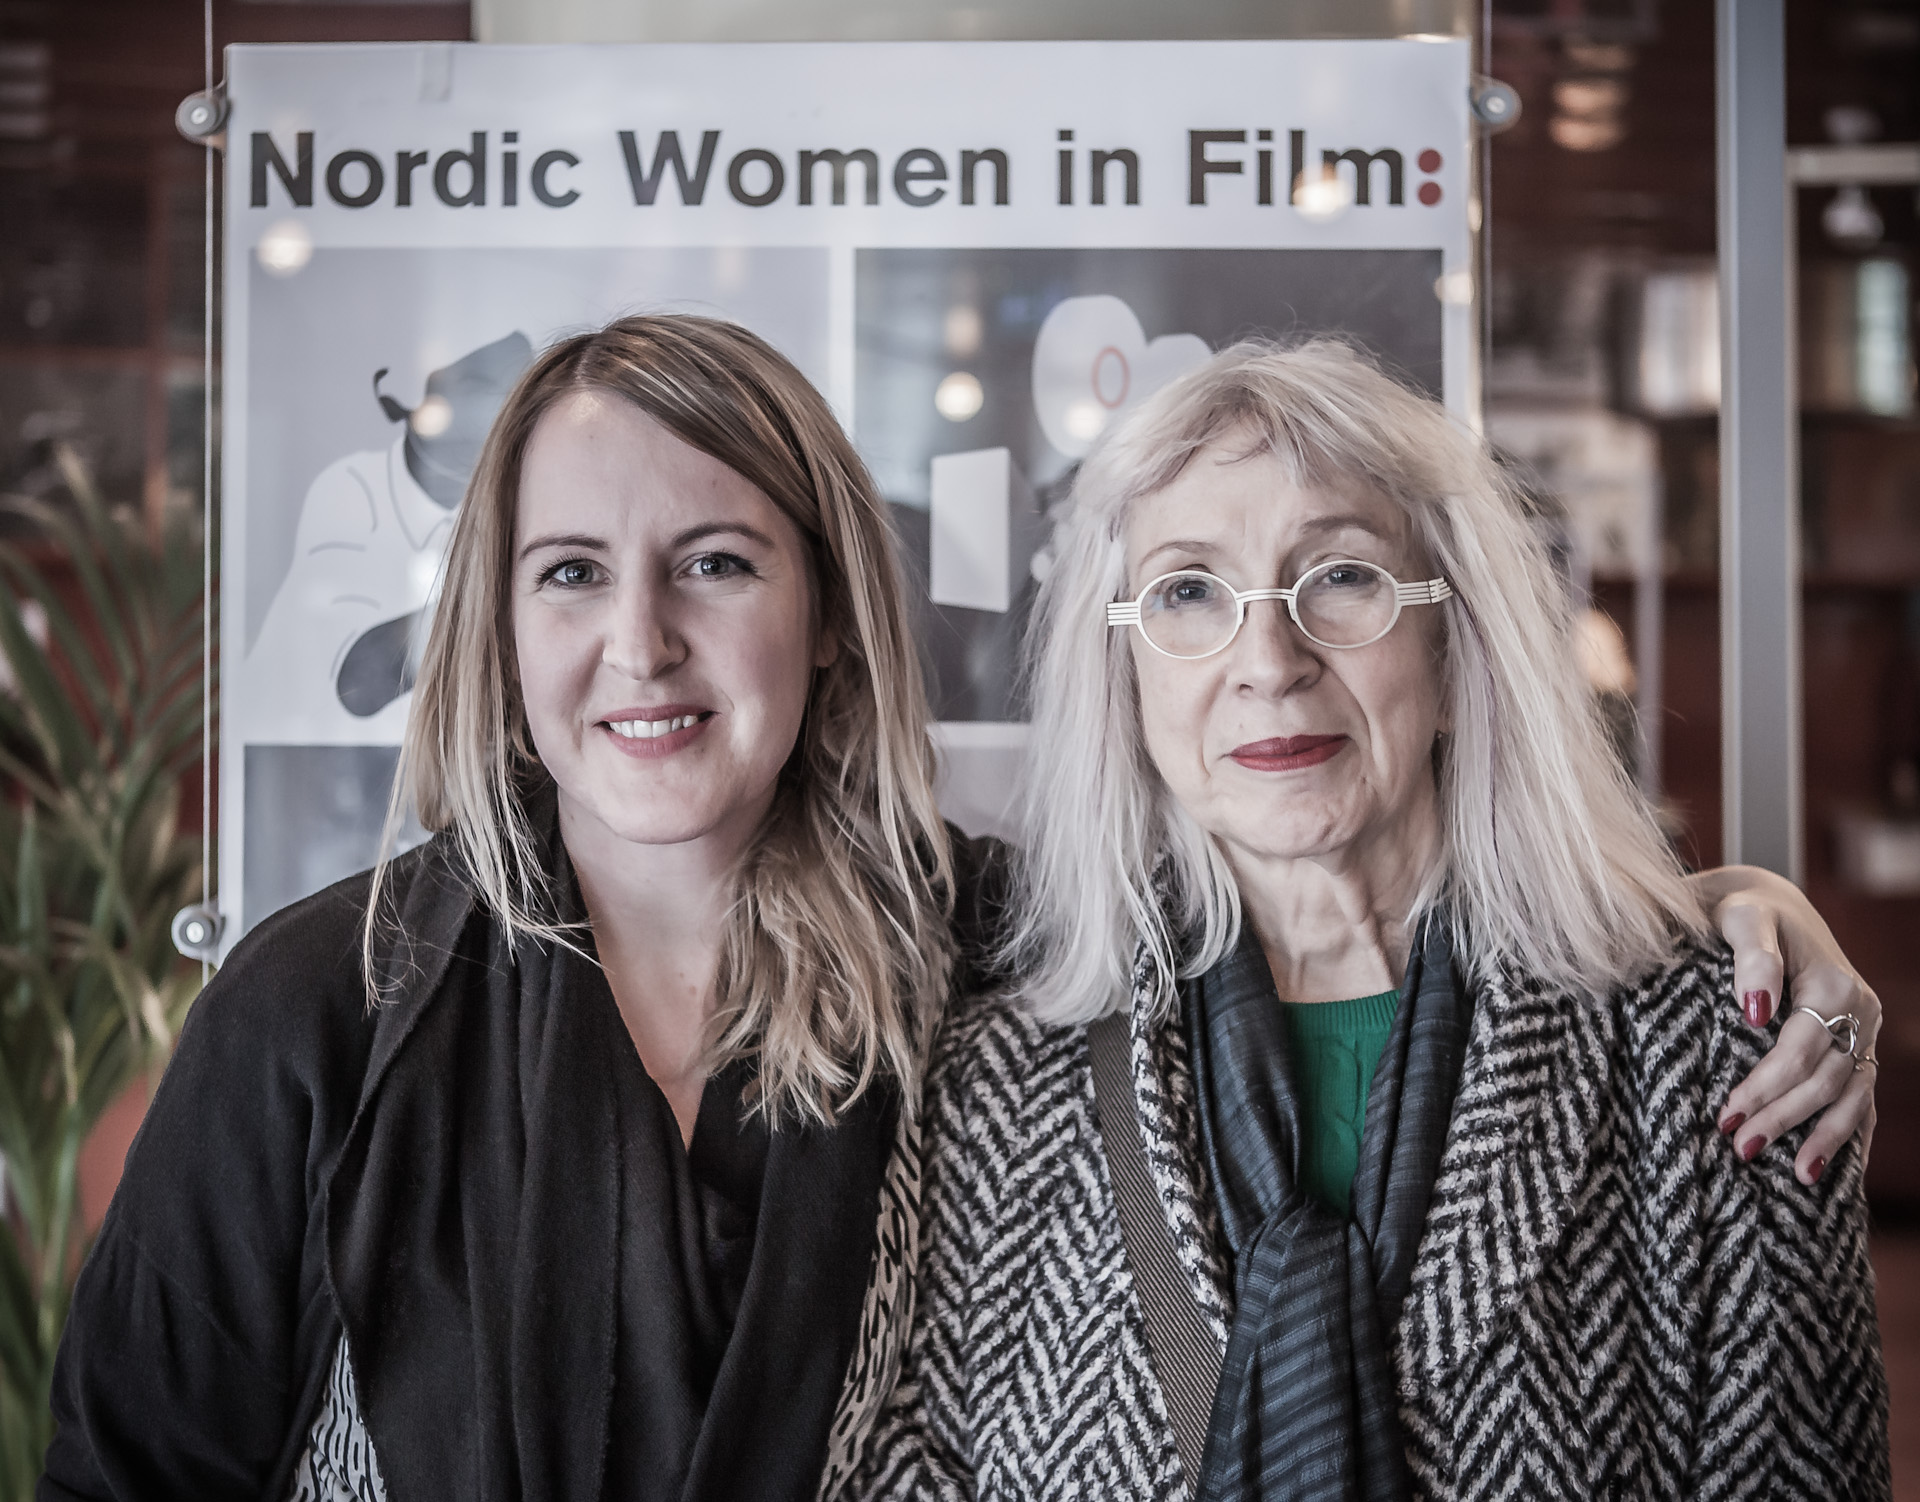 Nordic film bio næstved sex med dildo